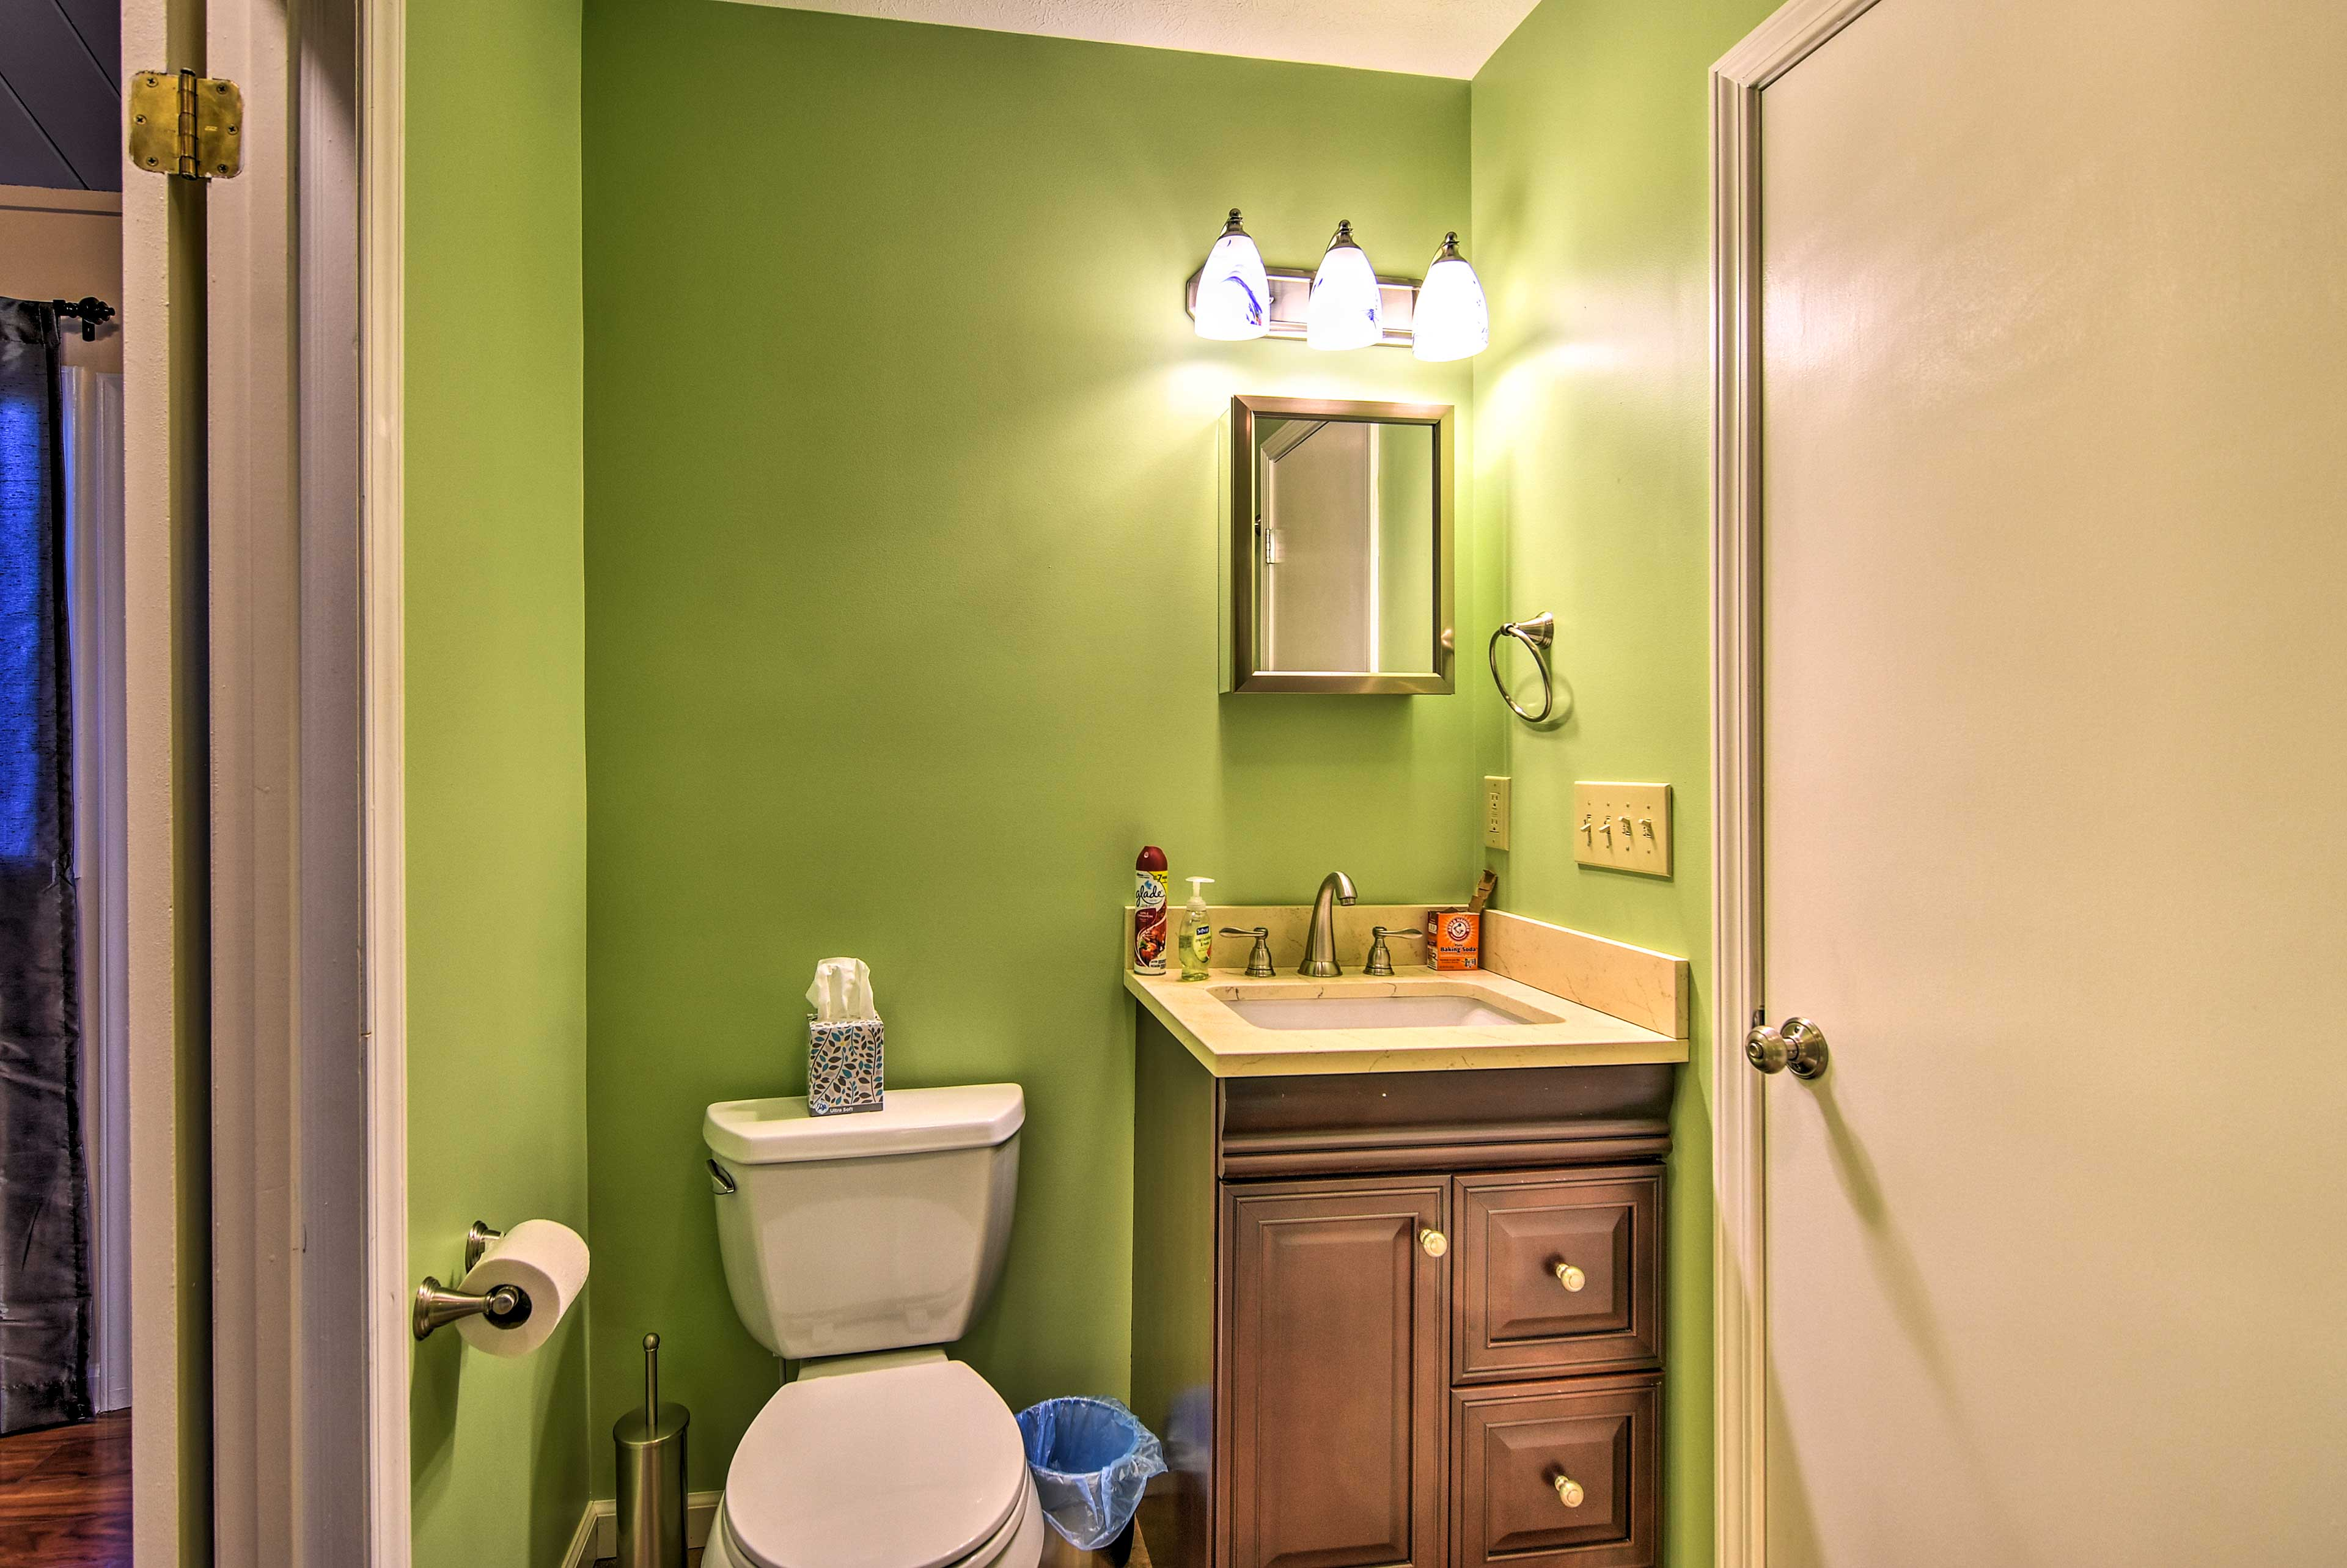 Guests can wash up at the mirrored vanity in the second bathroom.